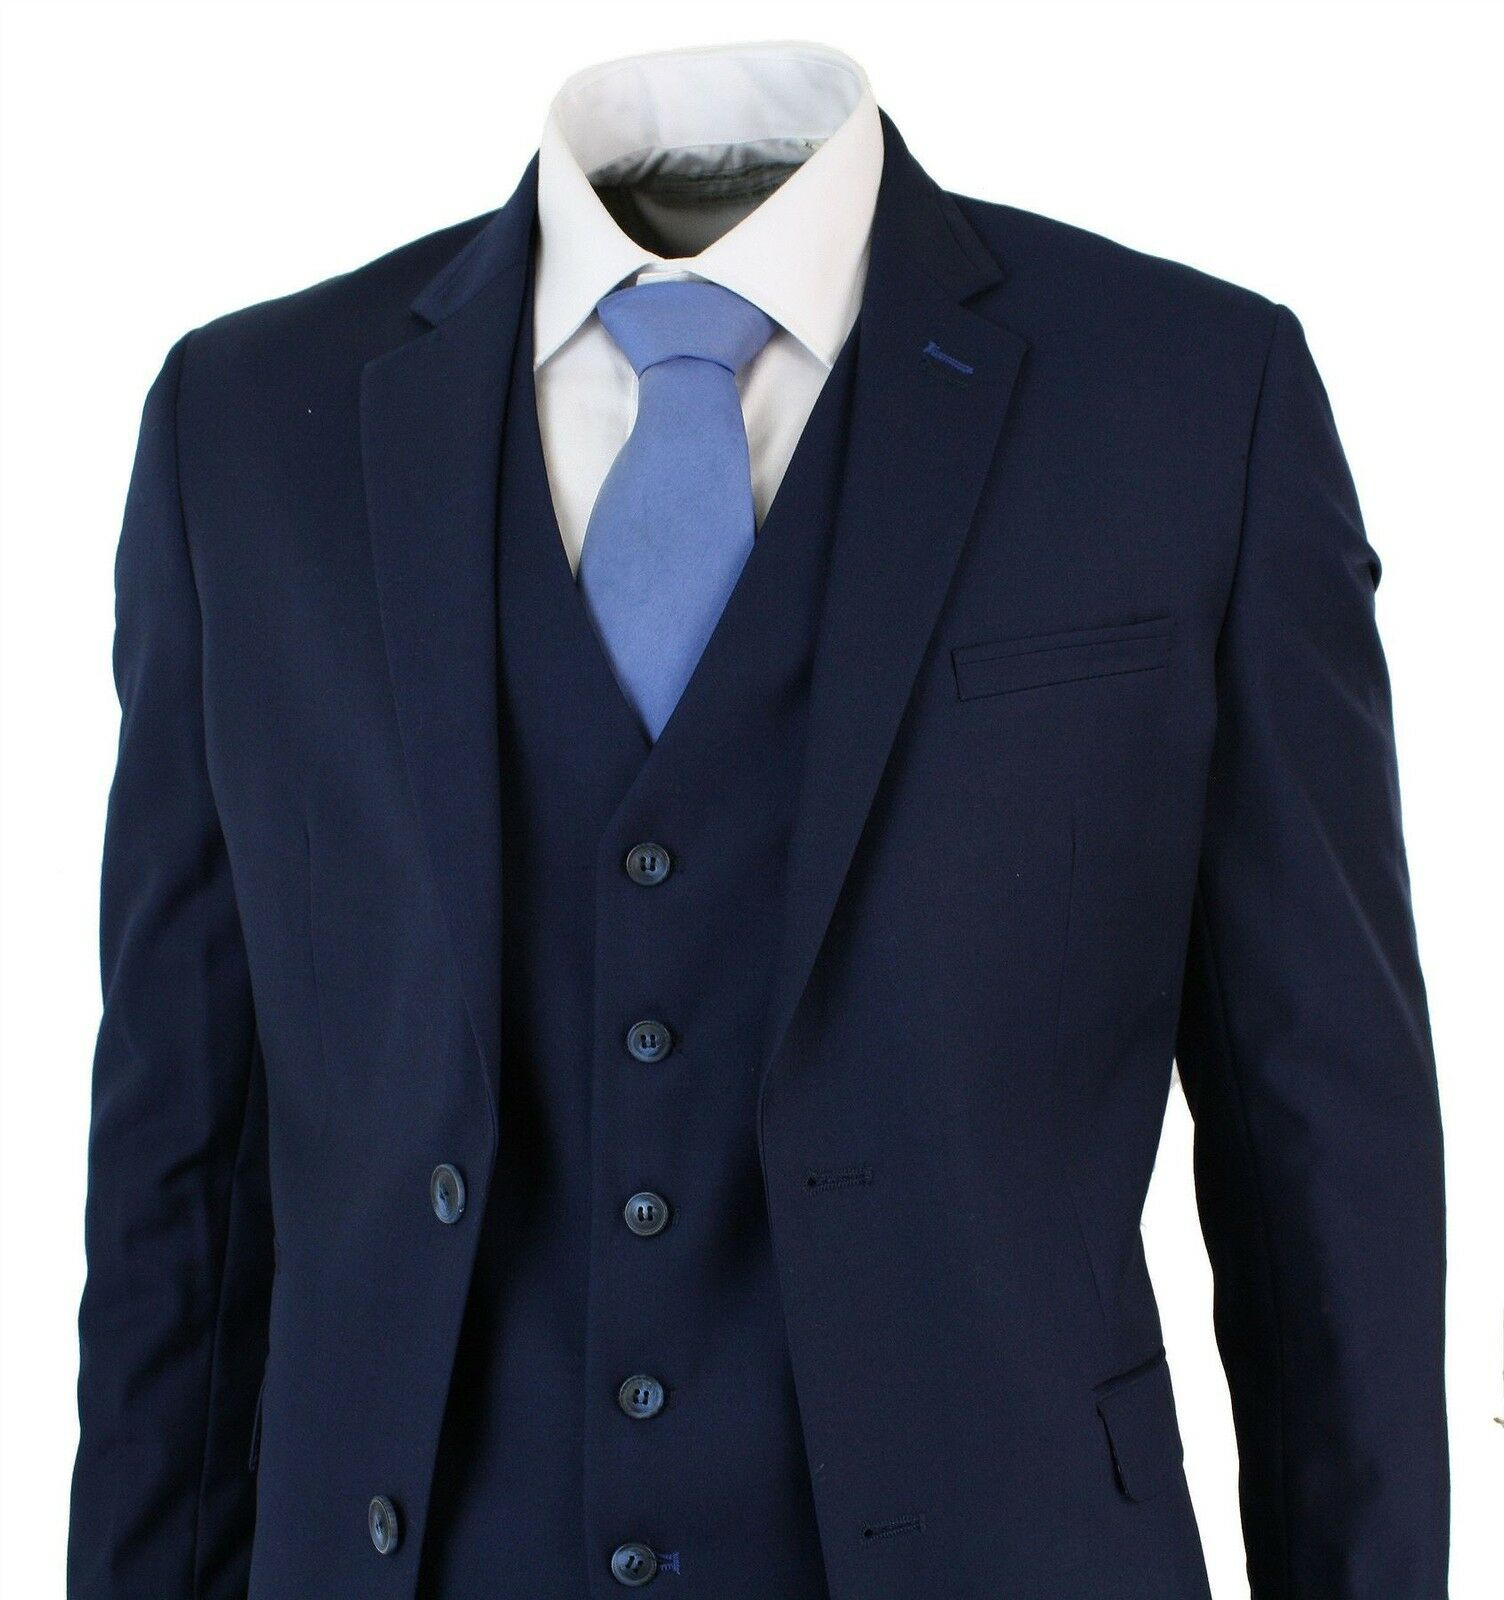 Herren Navy Blau 3 Piece TailoROT Fit Short Regular & Long Smart Formal Suit